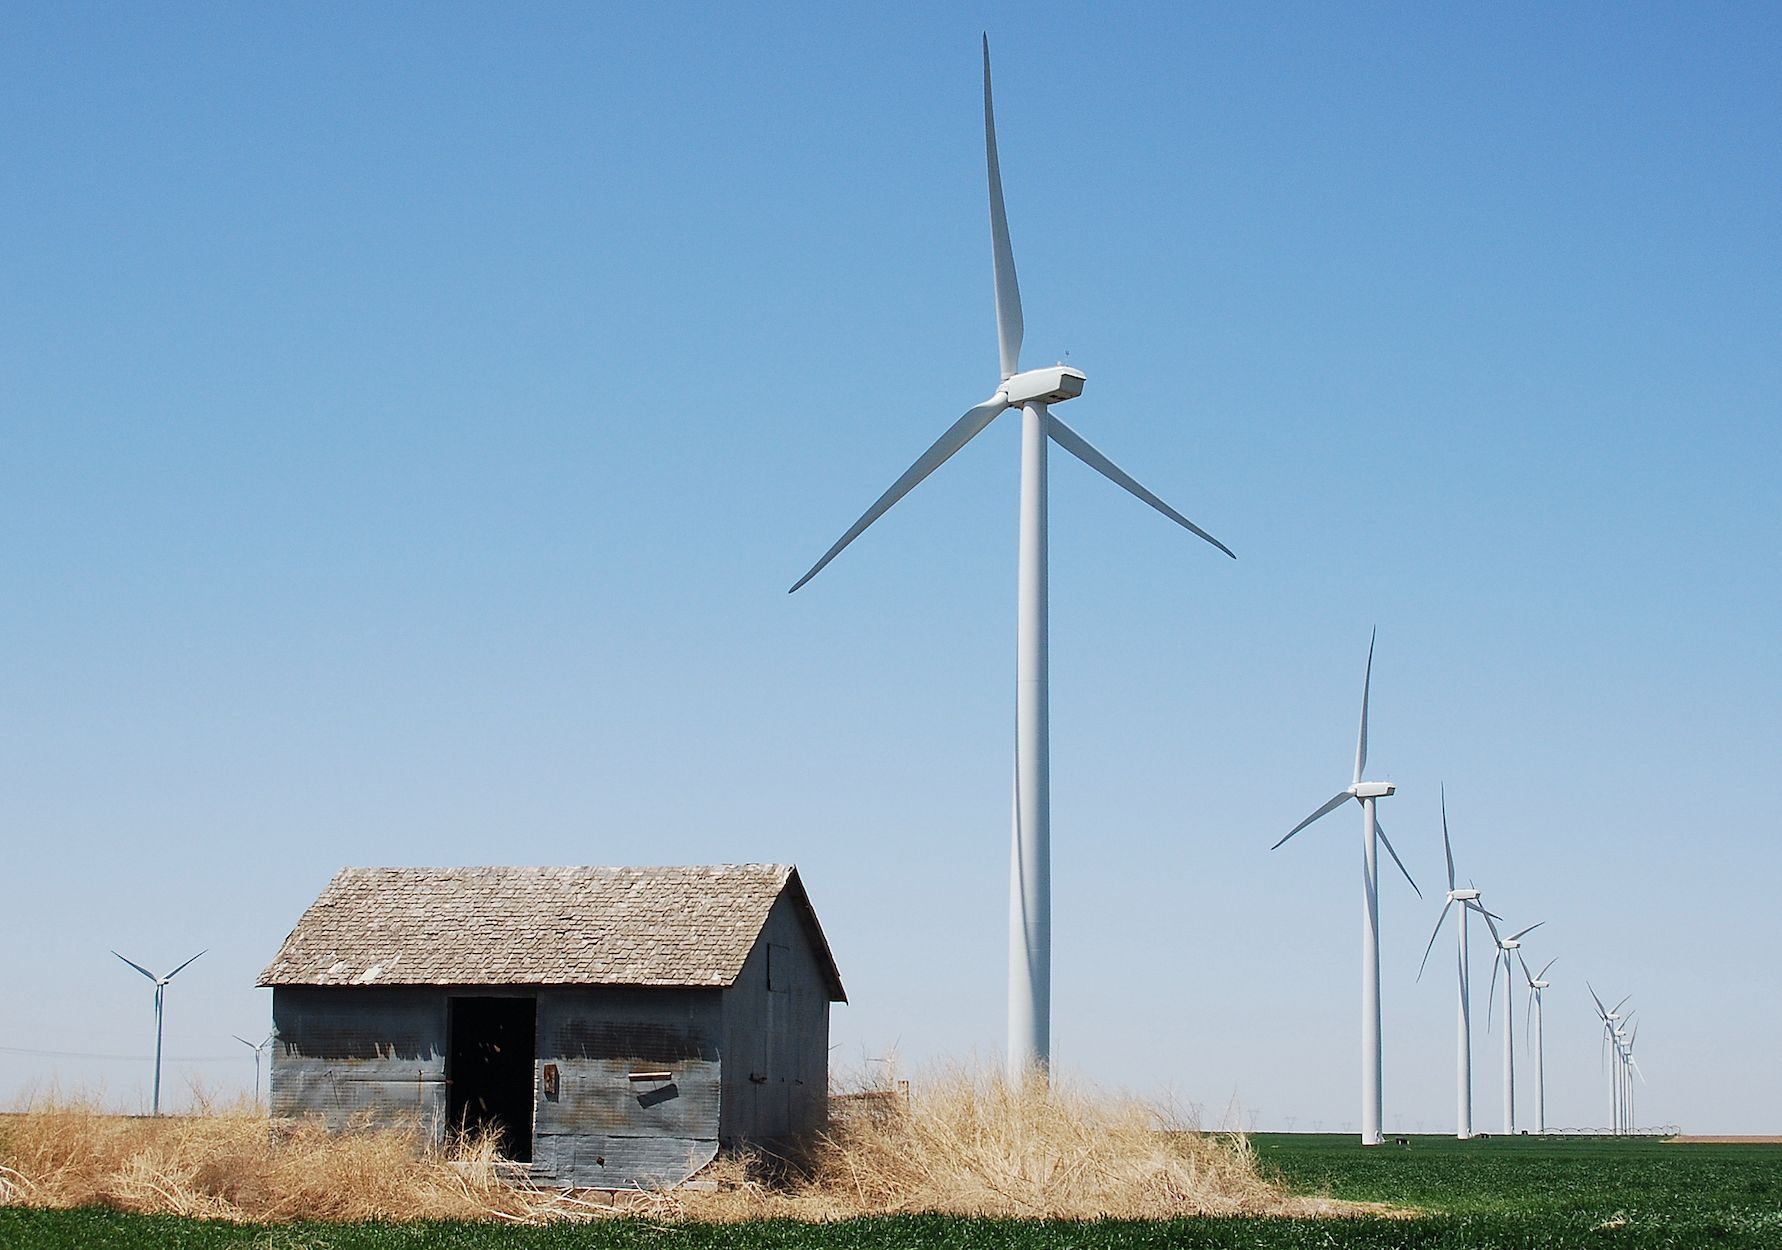 Xcel is accelerating wind and solar investments to boost Minnesota's economy as it seeks to recover from the coronavirus pandemic.